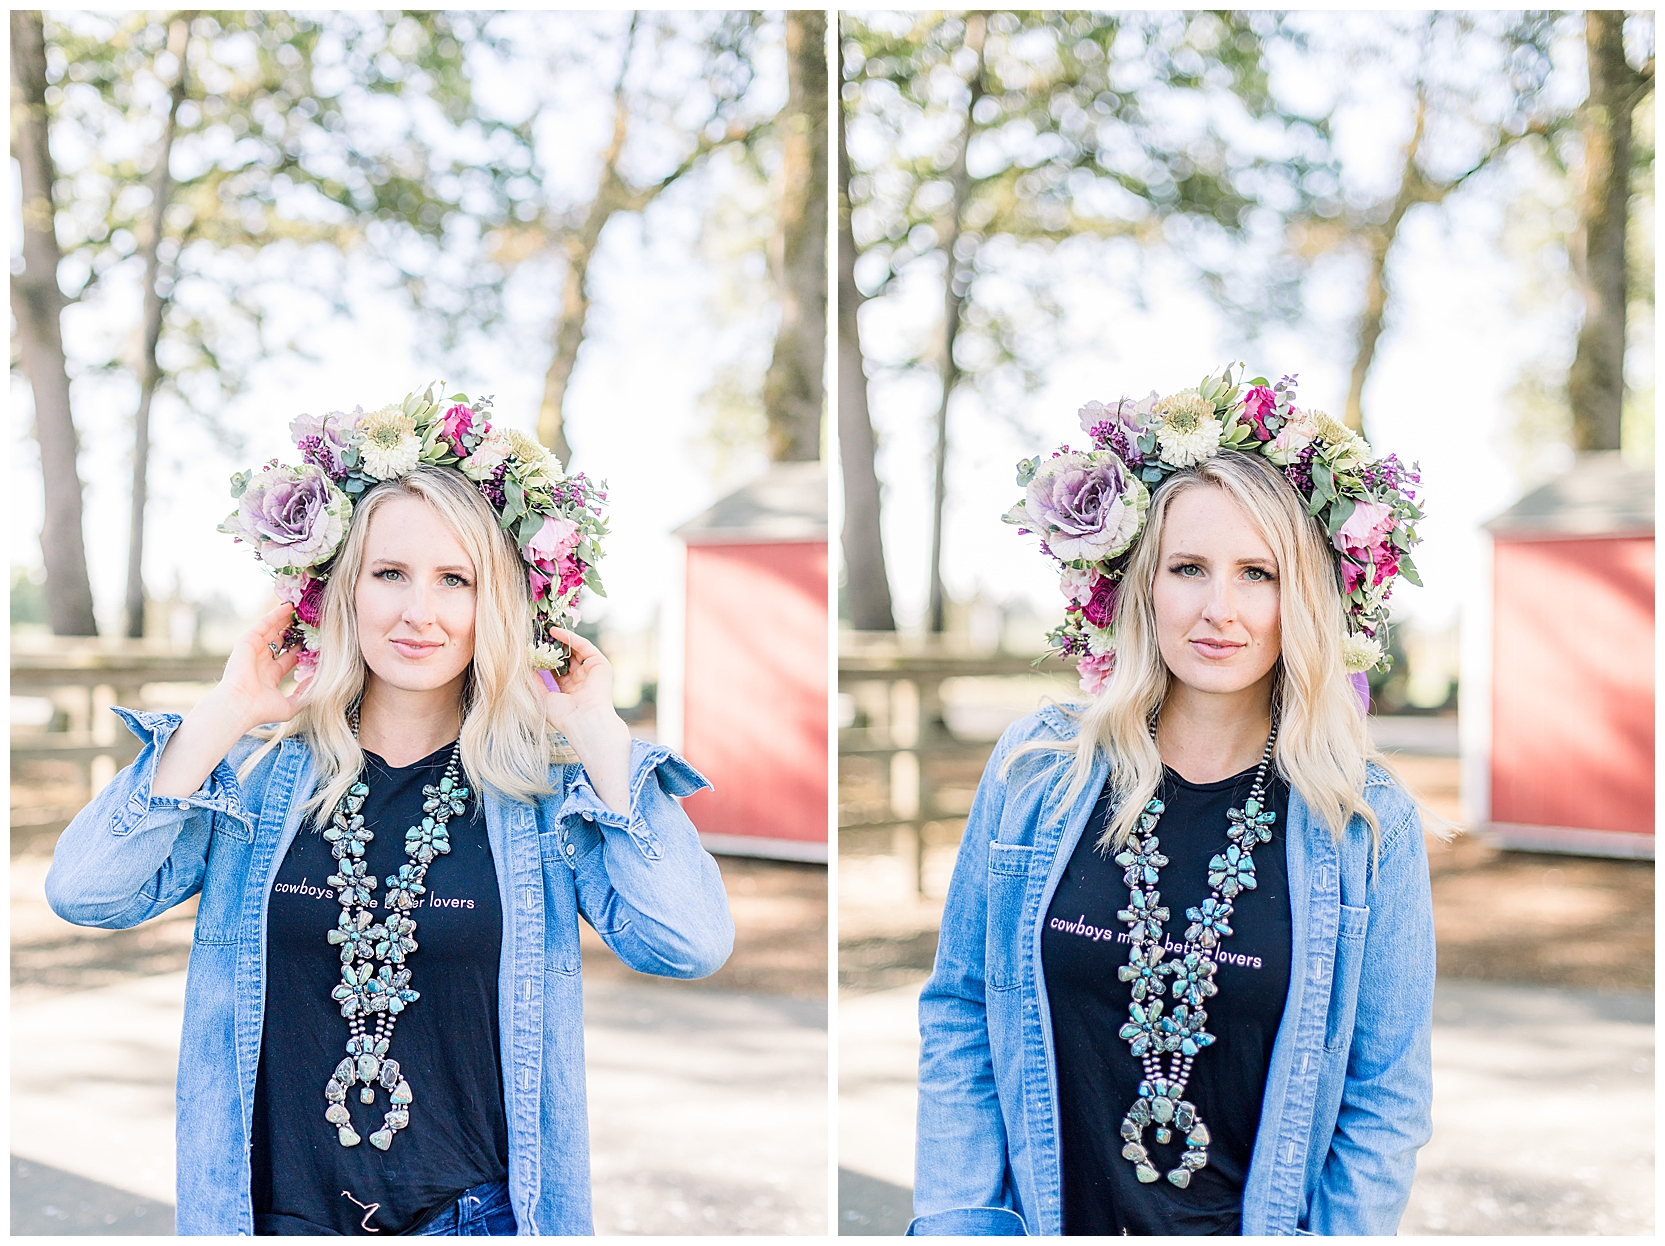 jessicafredericks_st petersburg_wedding_photographer_bridesmaid_farm_donkey_flower crown_inspo_0028.jpg